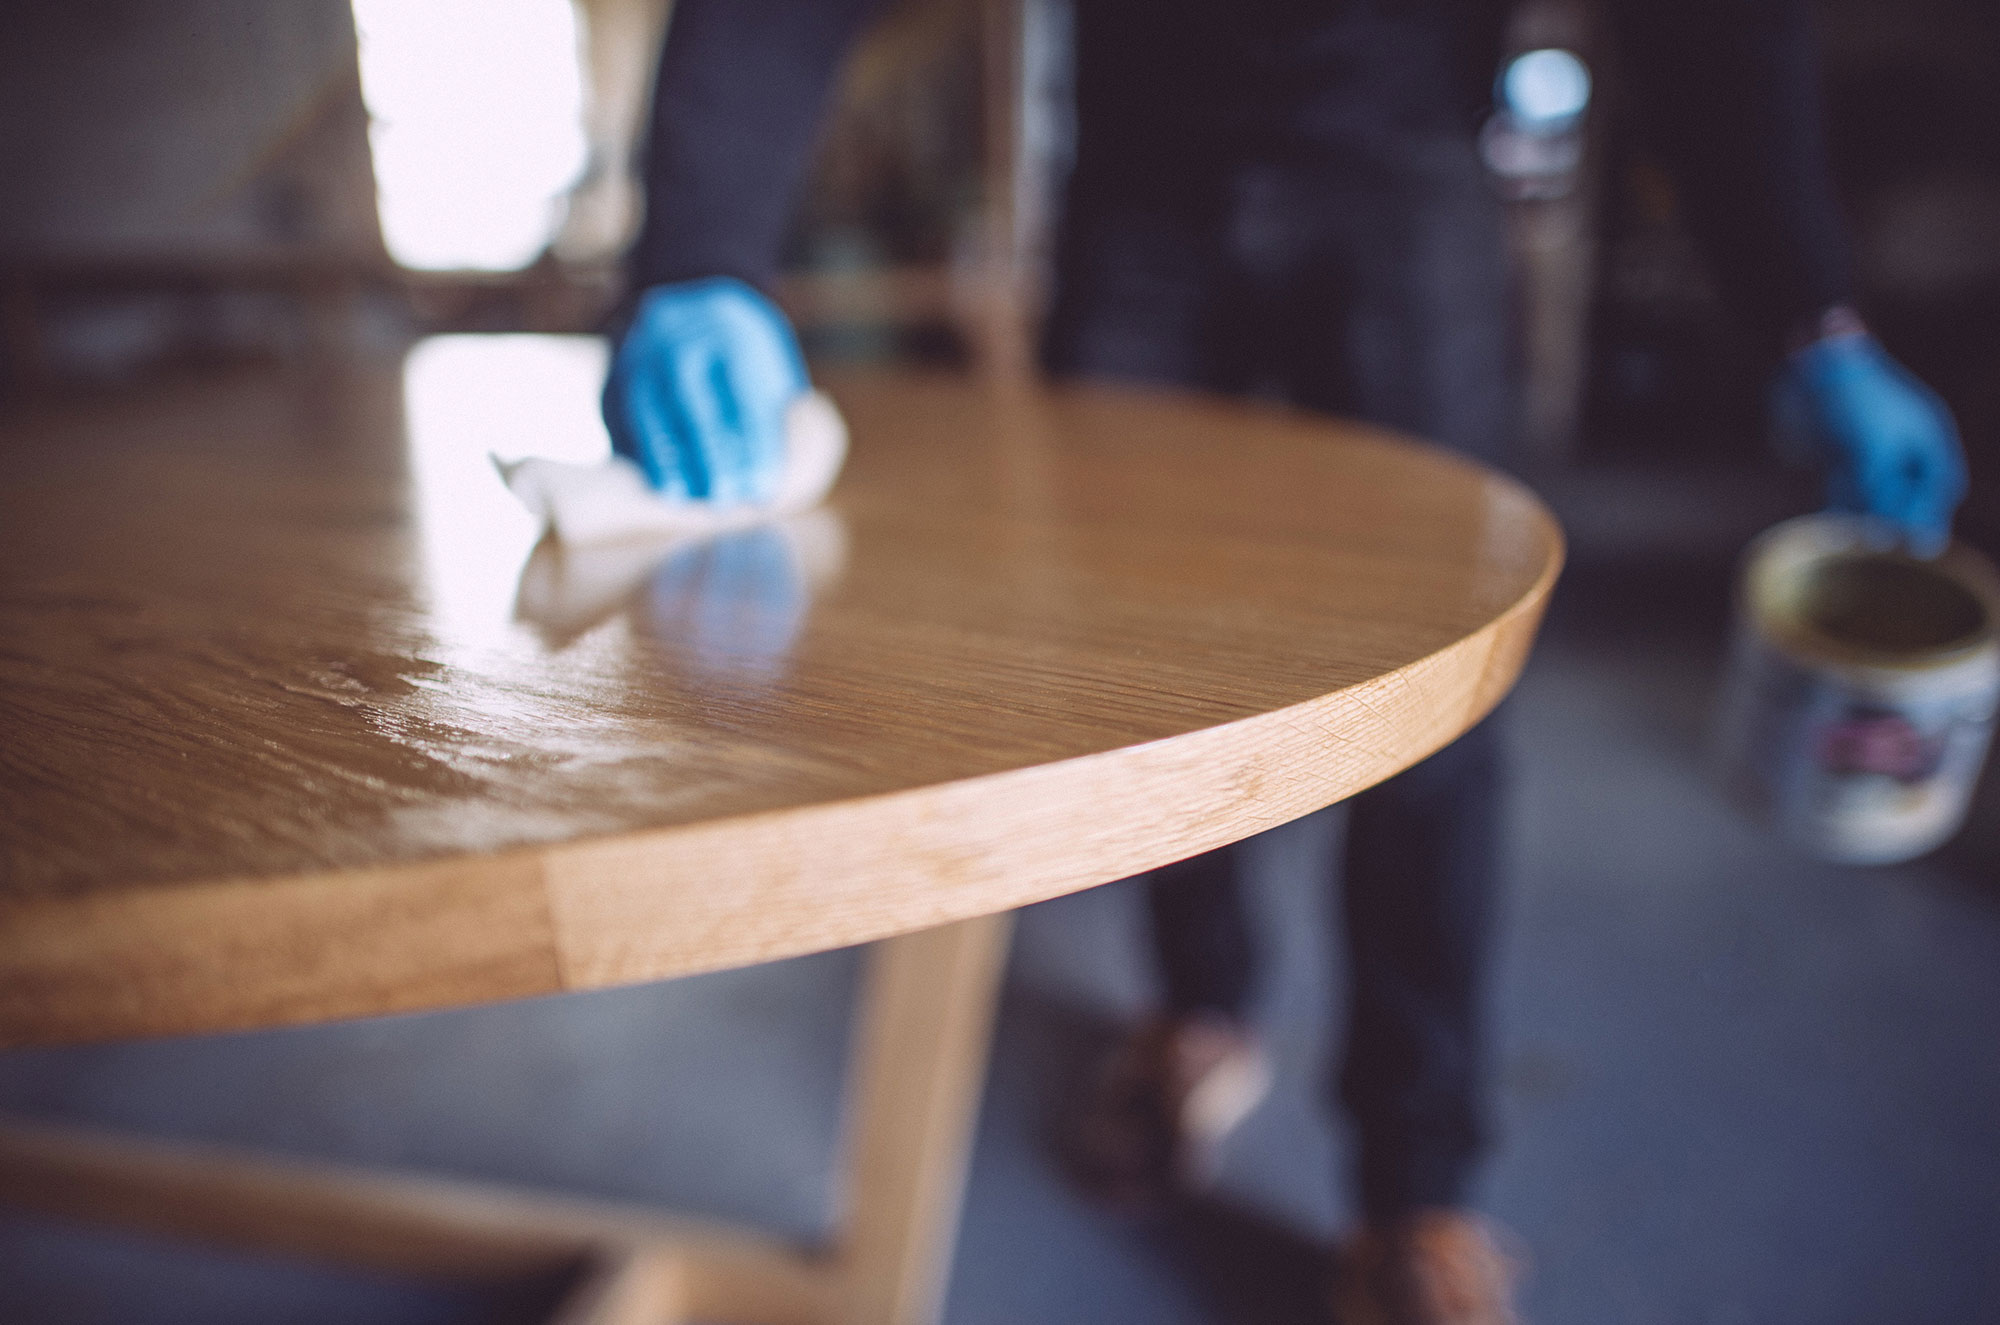 We select the right finish for each piece of furniture, be it oil, wax or lacquer.